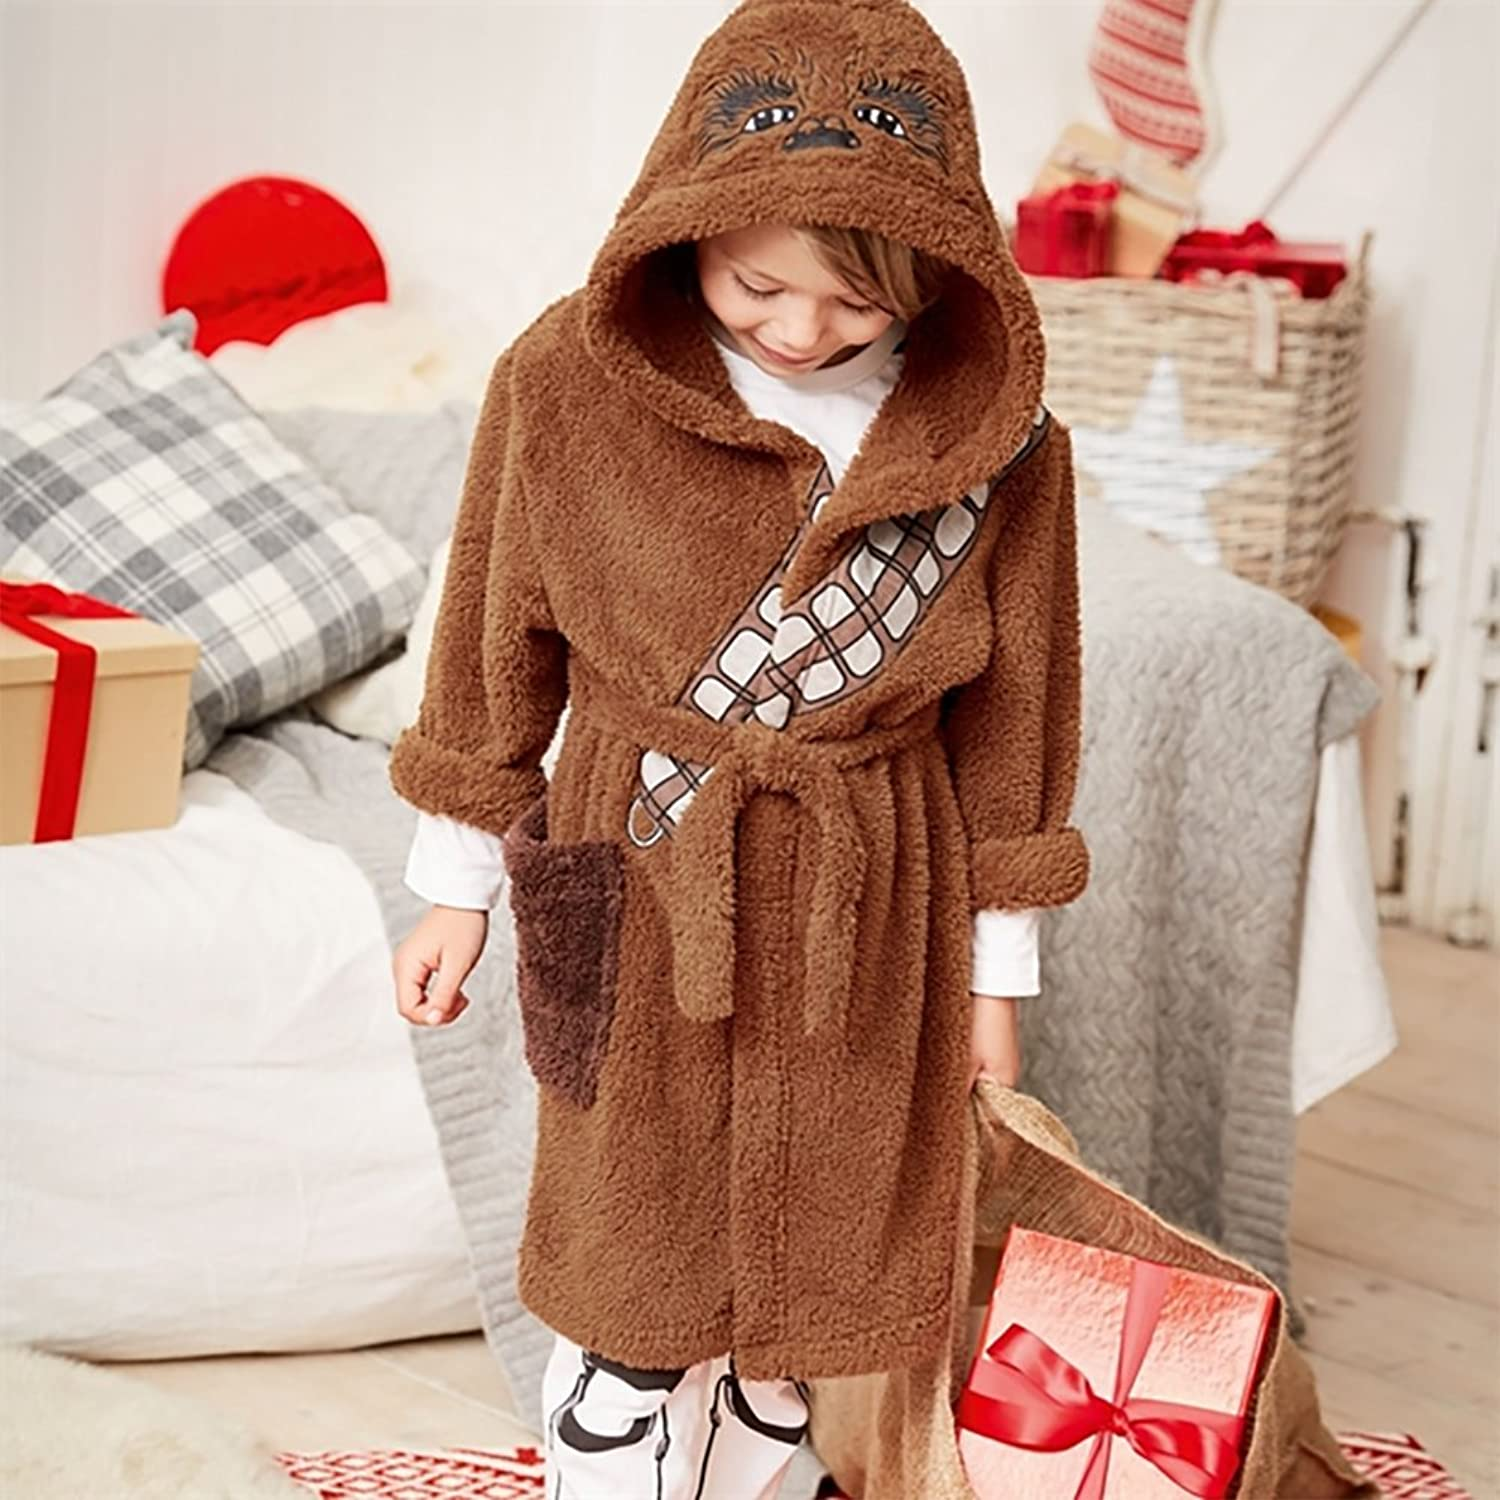 Colorful Wookie Dressing Gown Images - Wedding and flowers ...